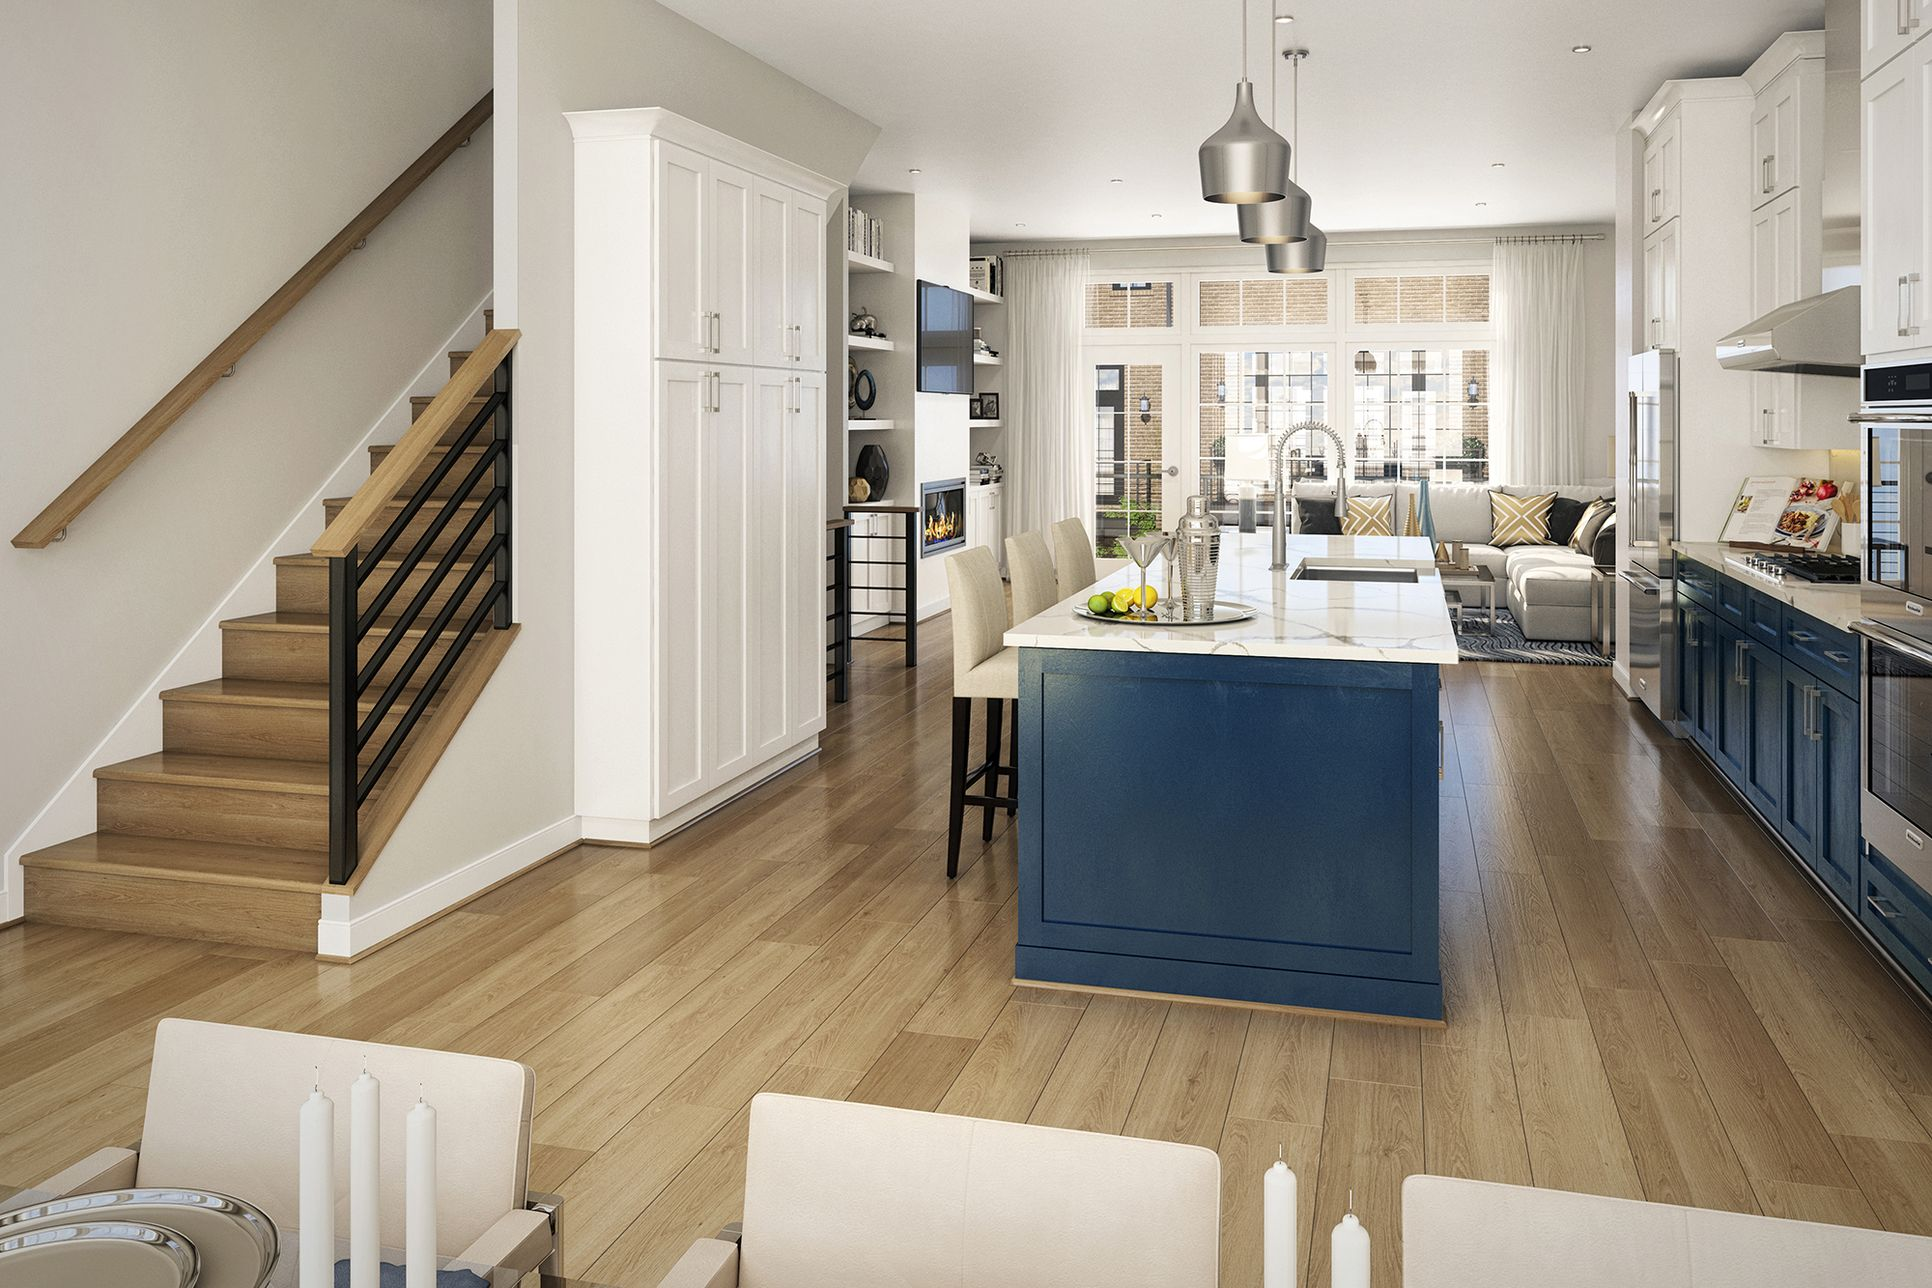 The Hayden at Union Towns Reston Station:Seating and storage are essential in this spacious kitchen.